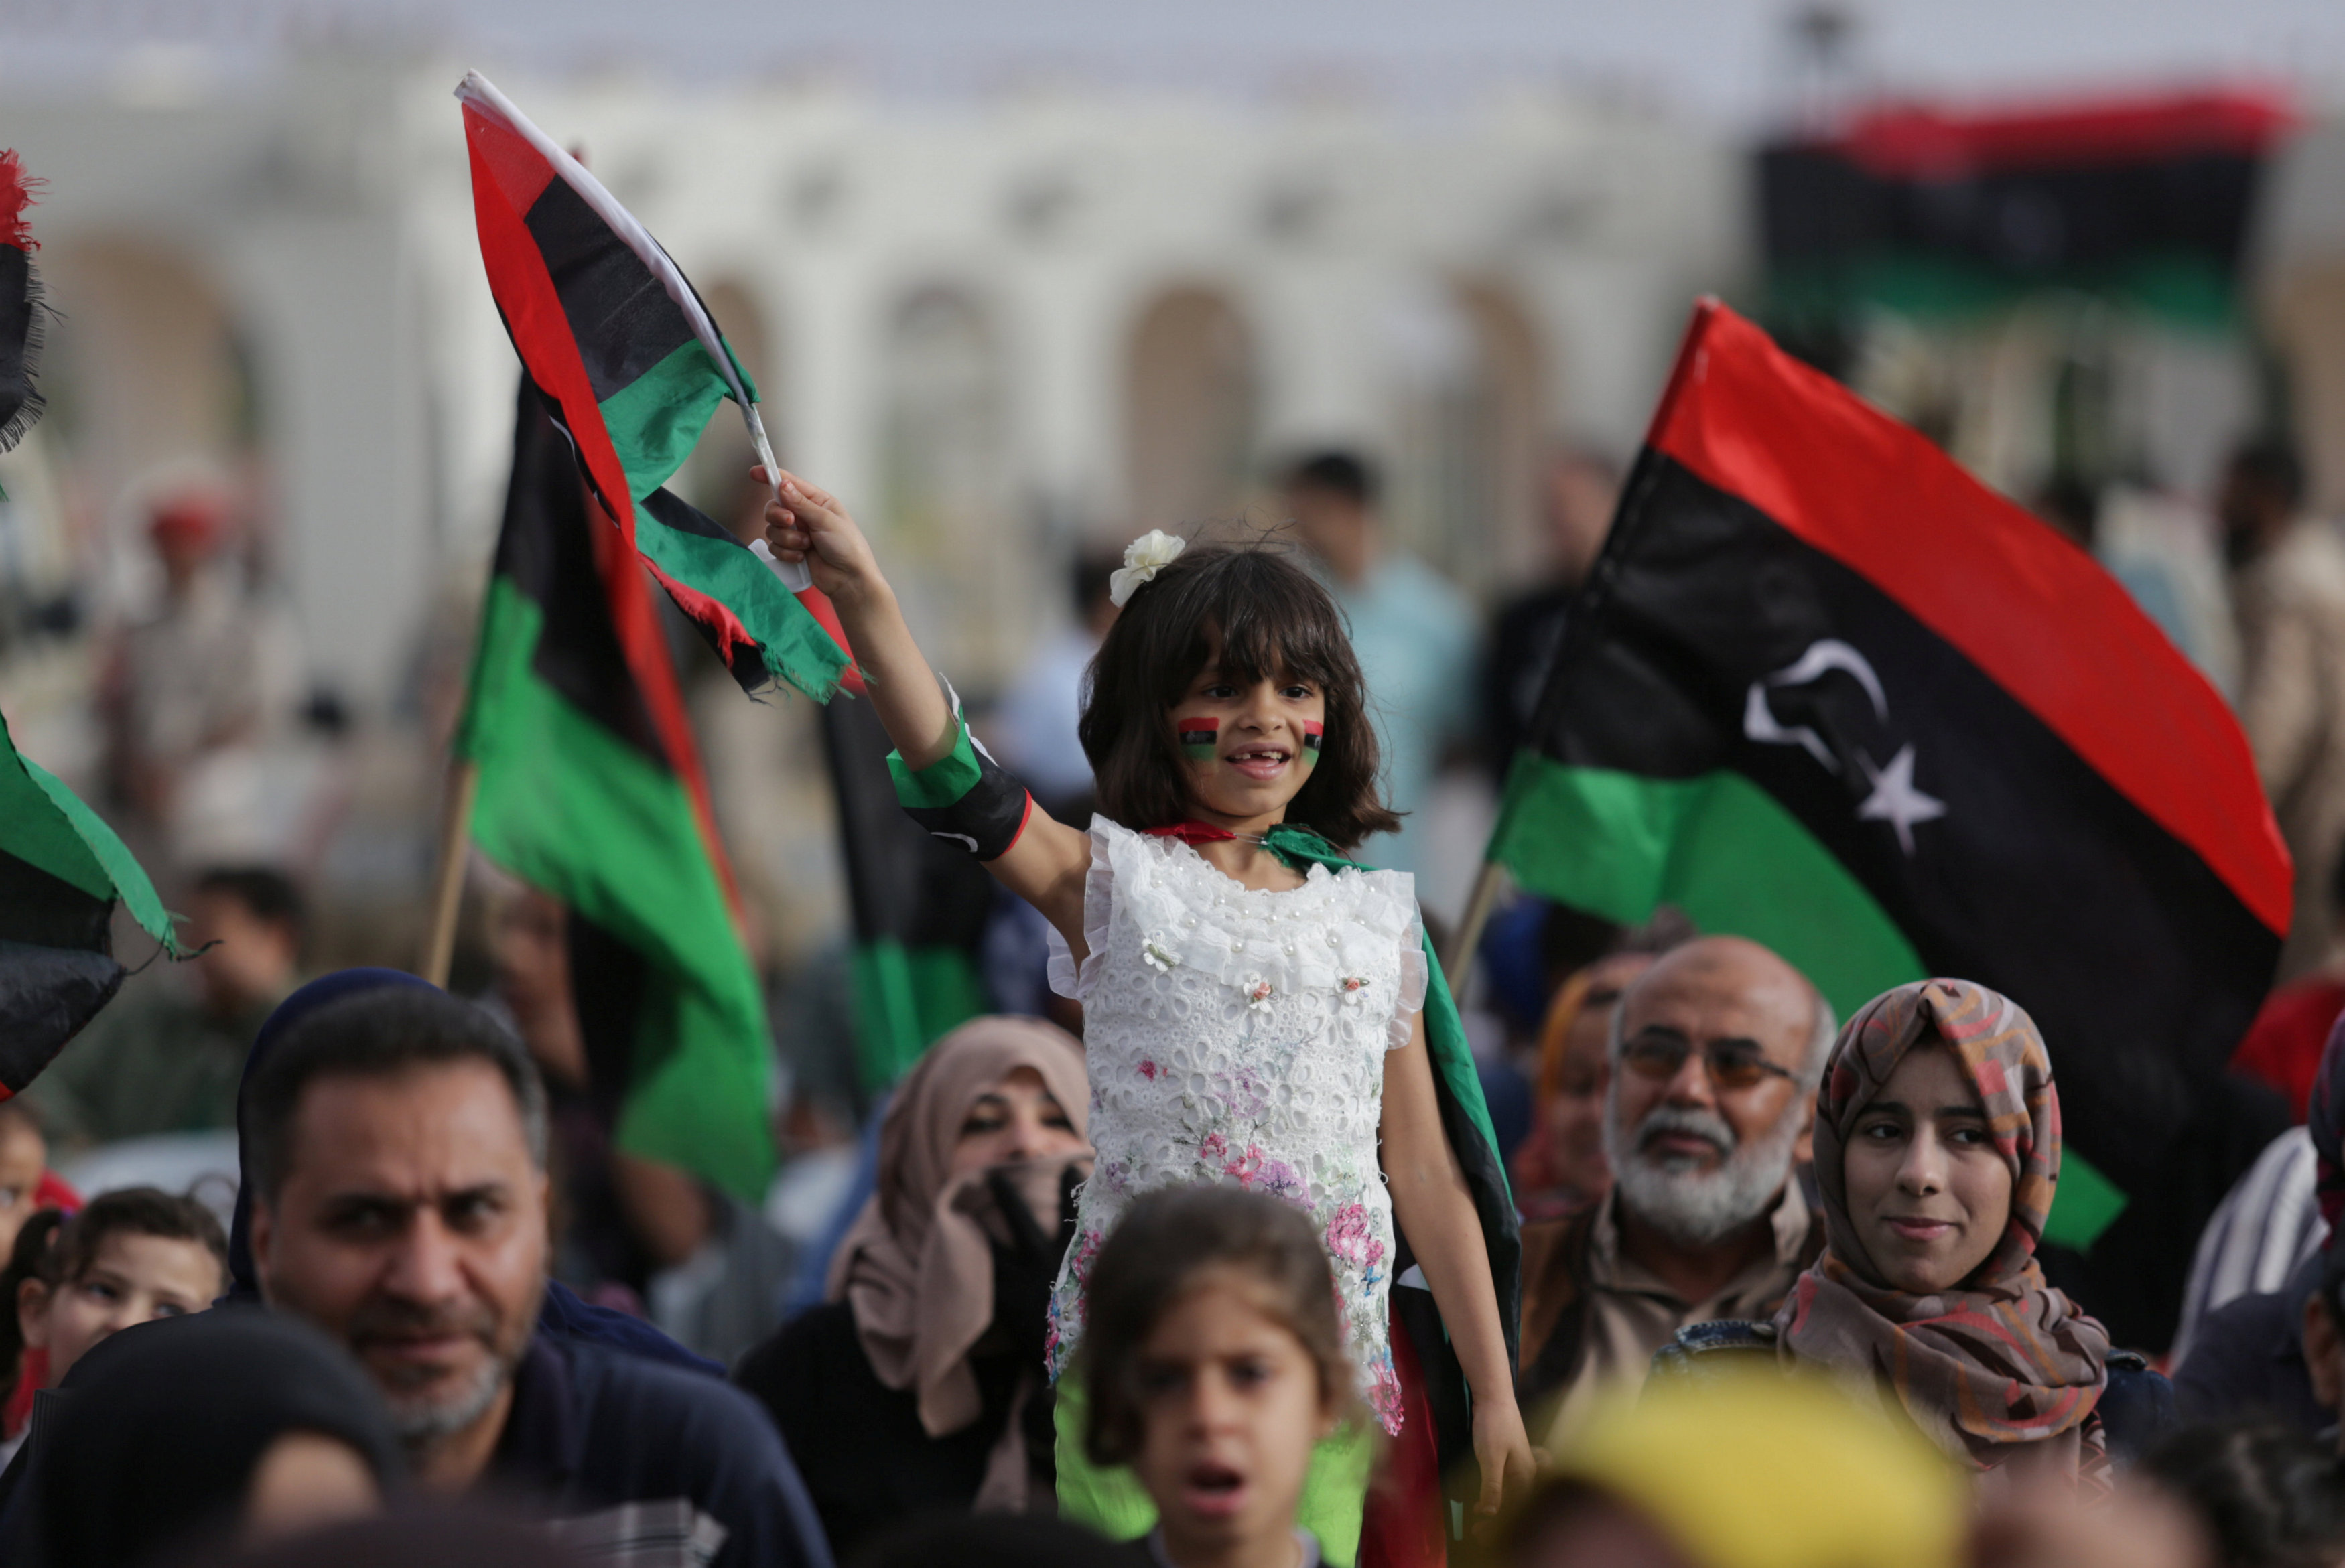 Libyan Commander Stages Military Parade on Benghazi Campaign Anniversary